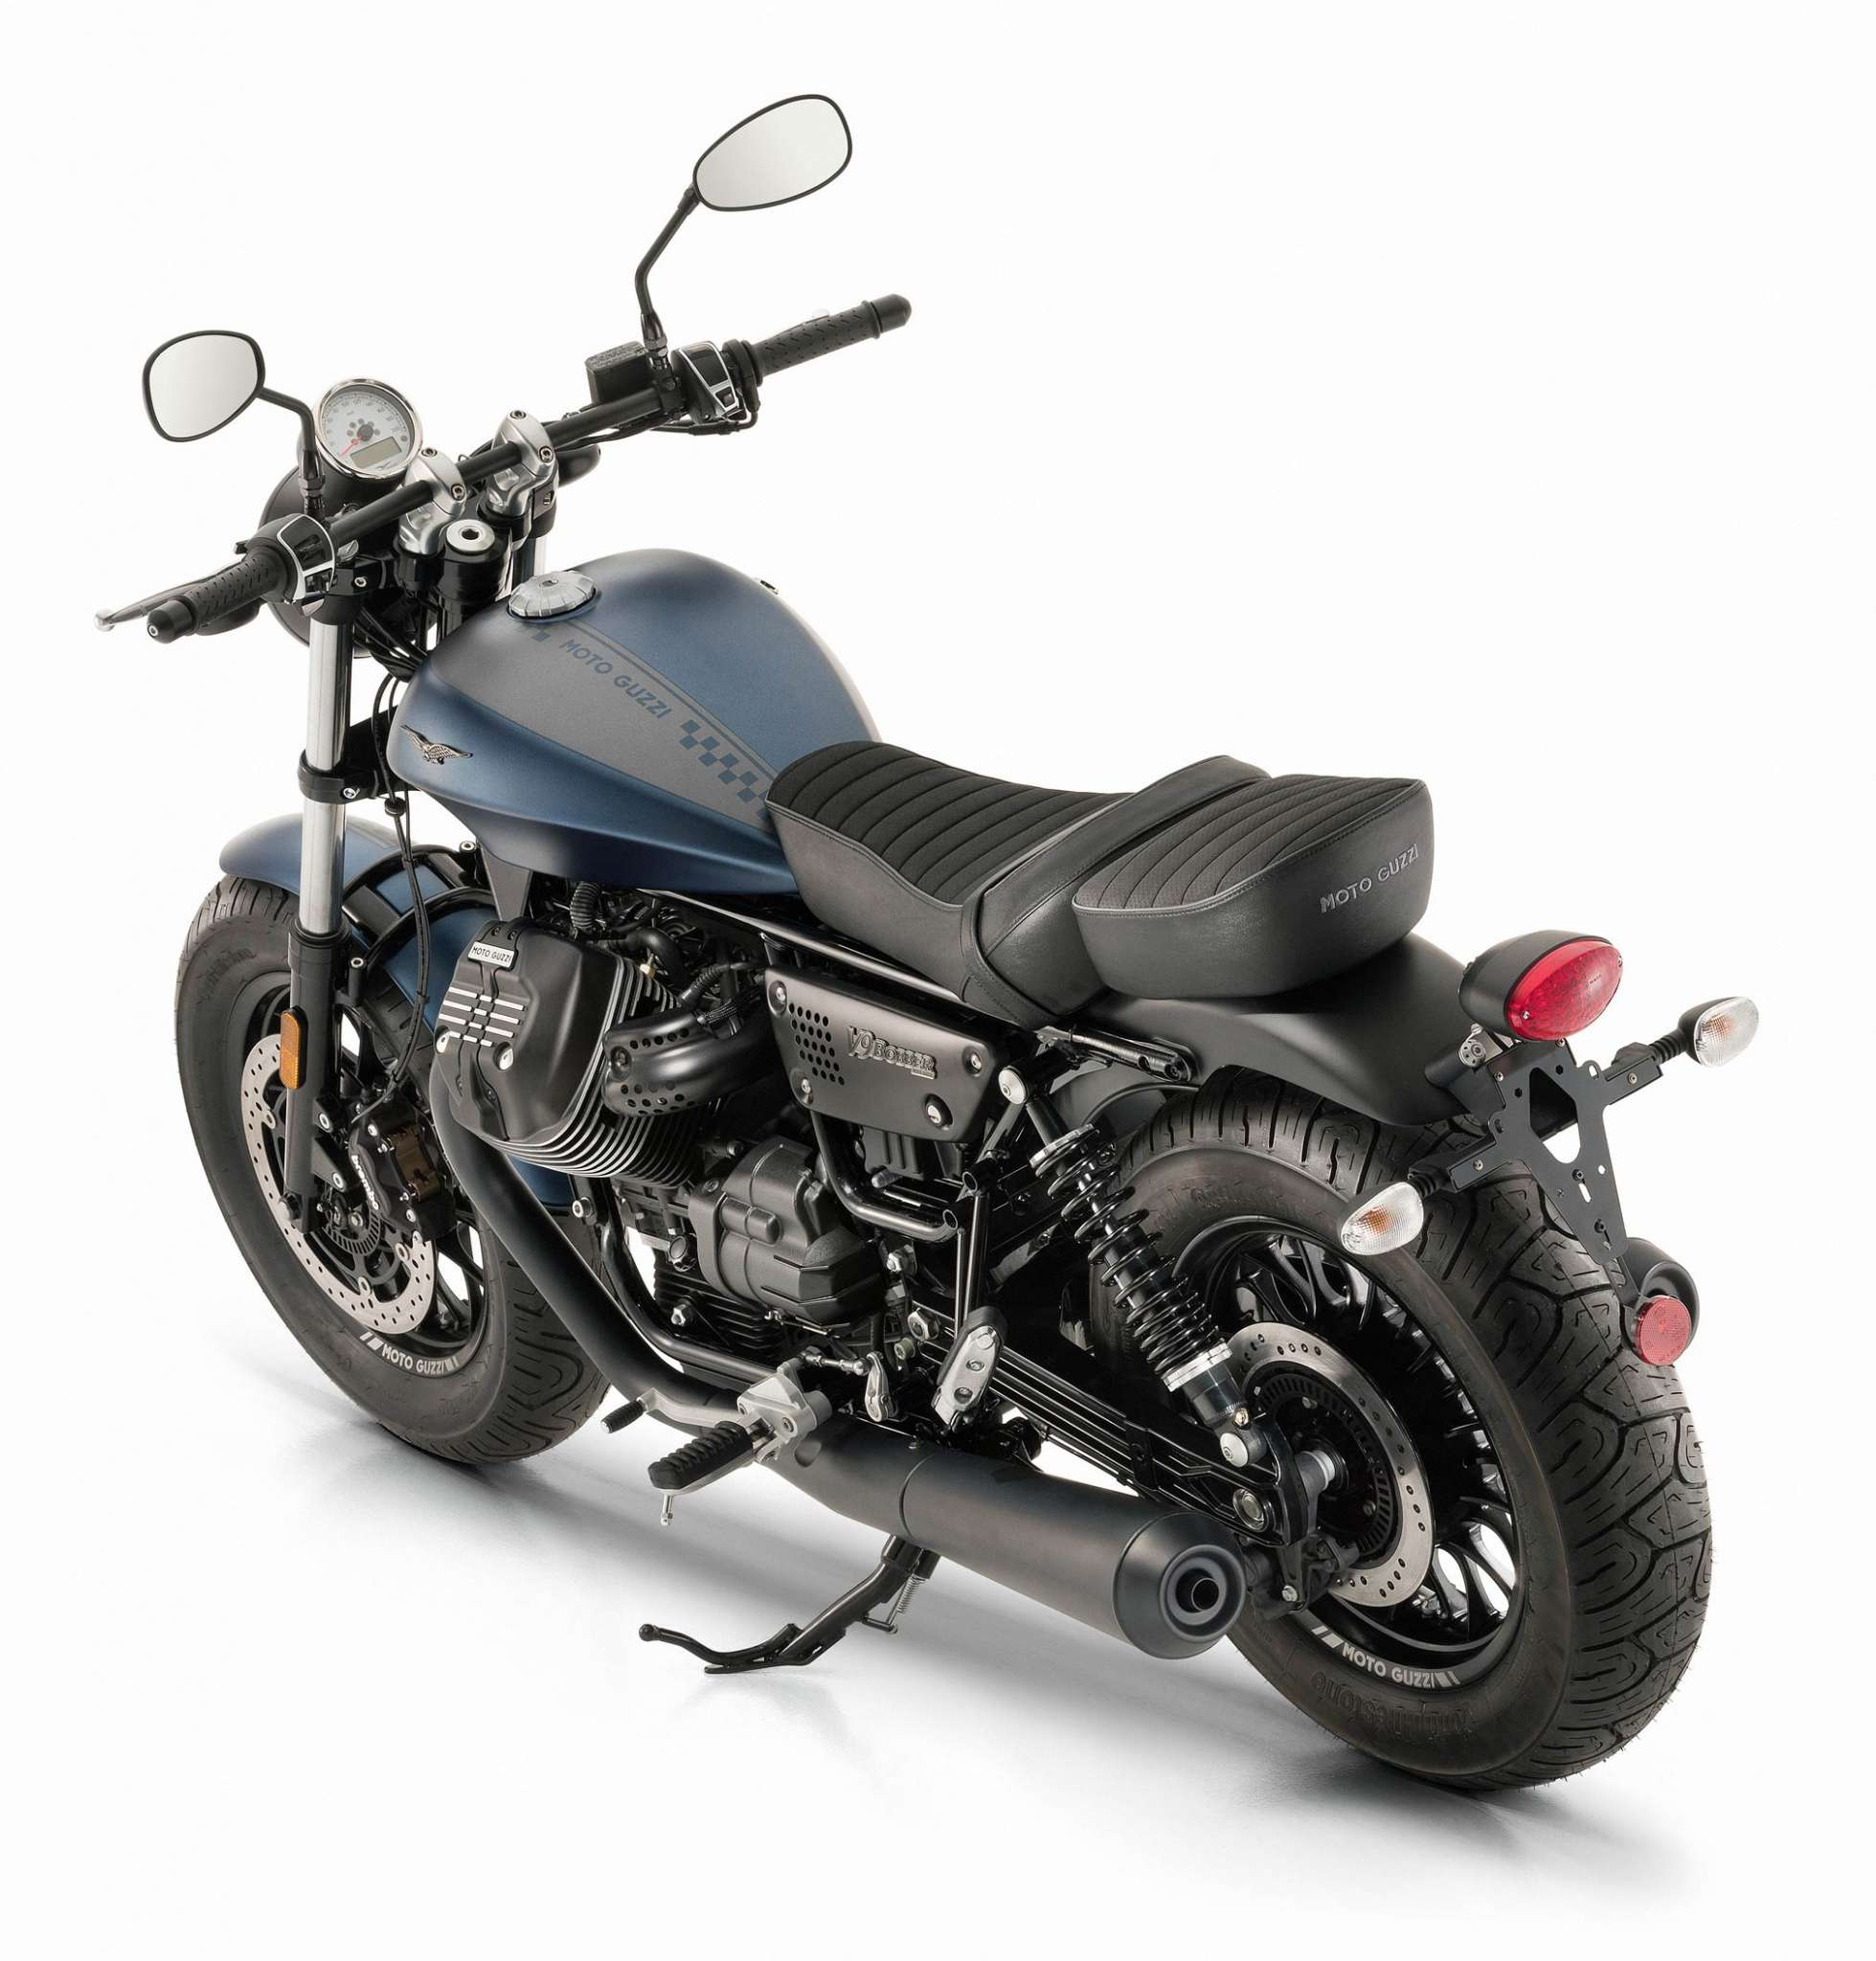 2018 moto guzzi v9 bobber review totalmotorcycle. Black Bedroom Furniture Sets. Home Design Ideas